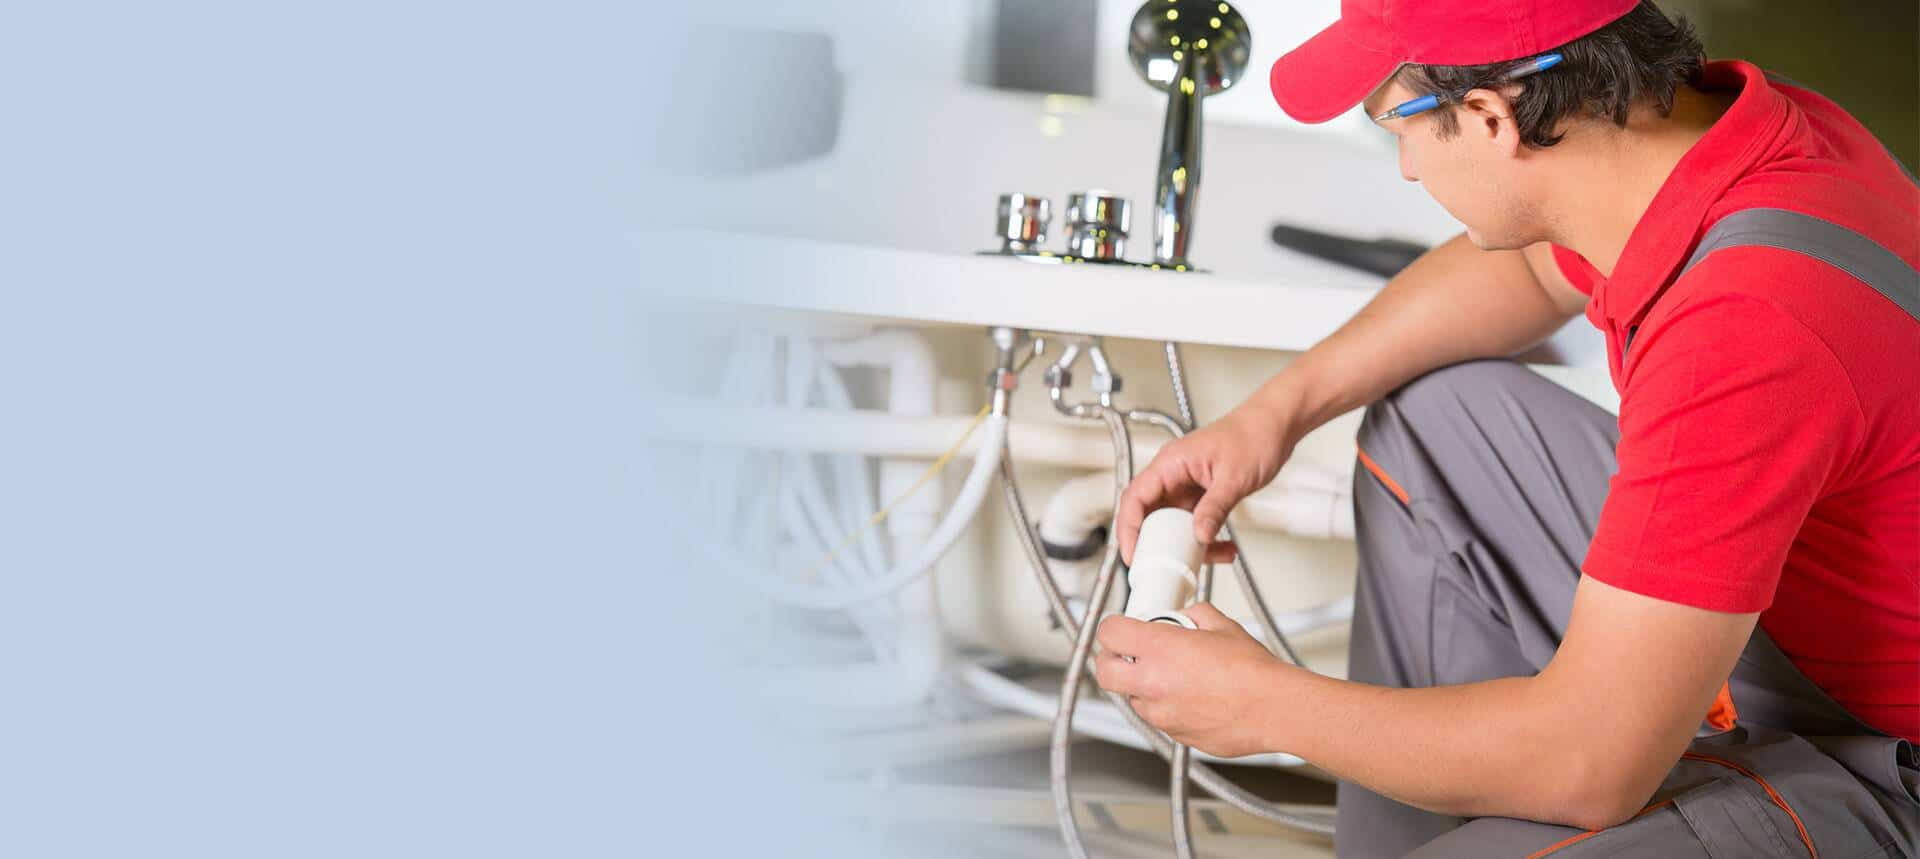 plumber fixing pipe lines - Tom's Plumbing and Drain Service, LLC